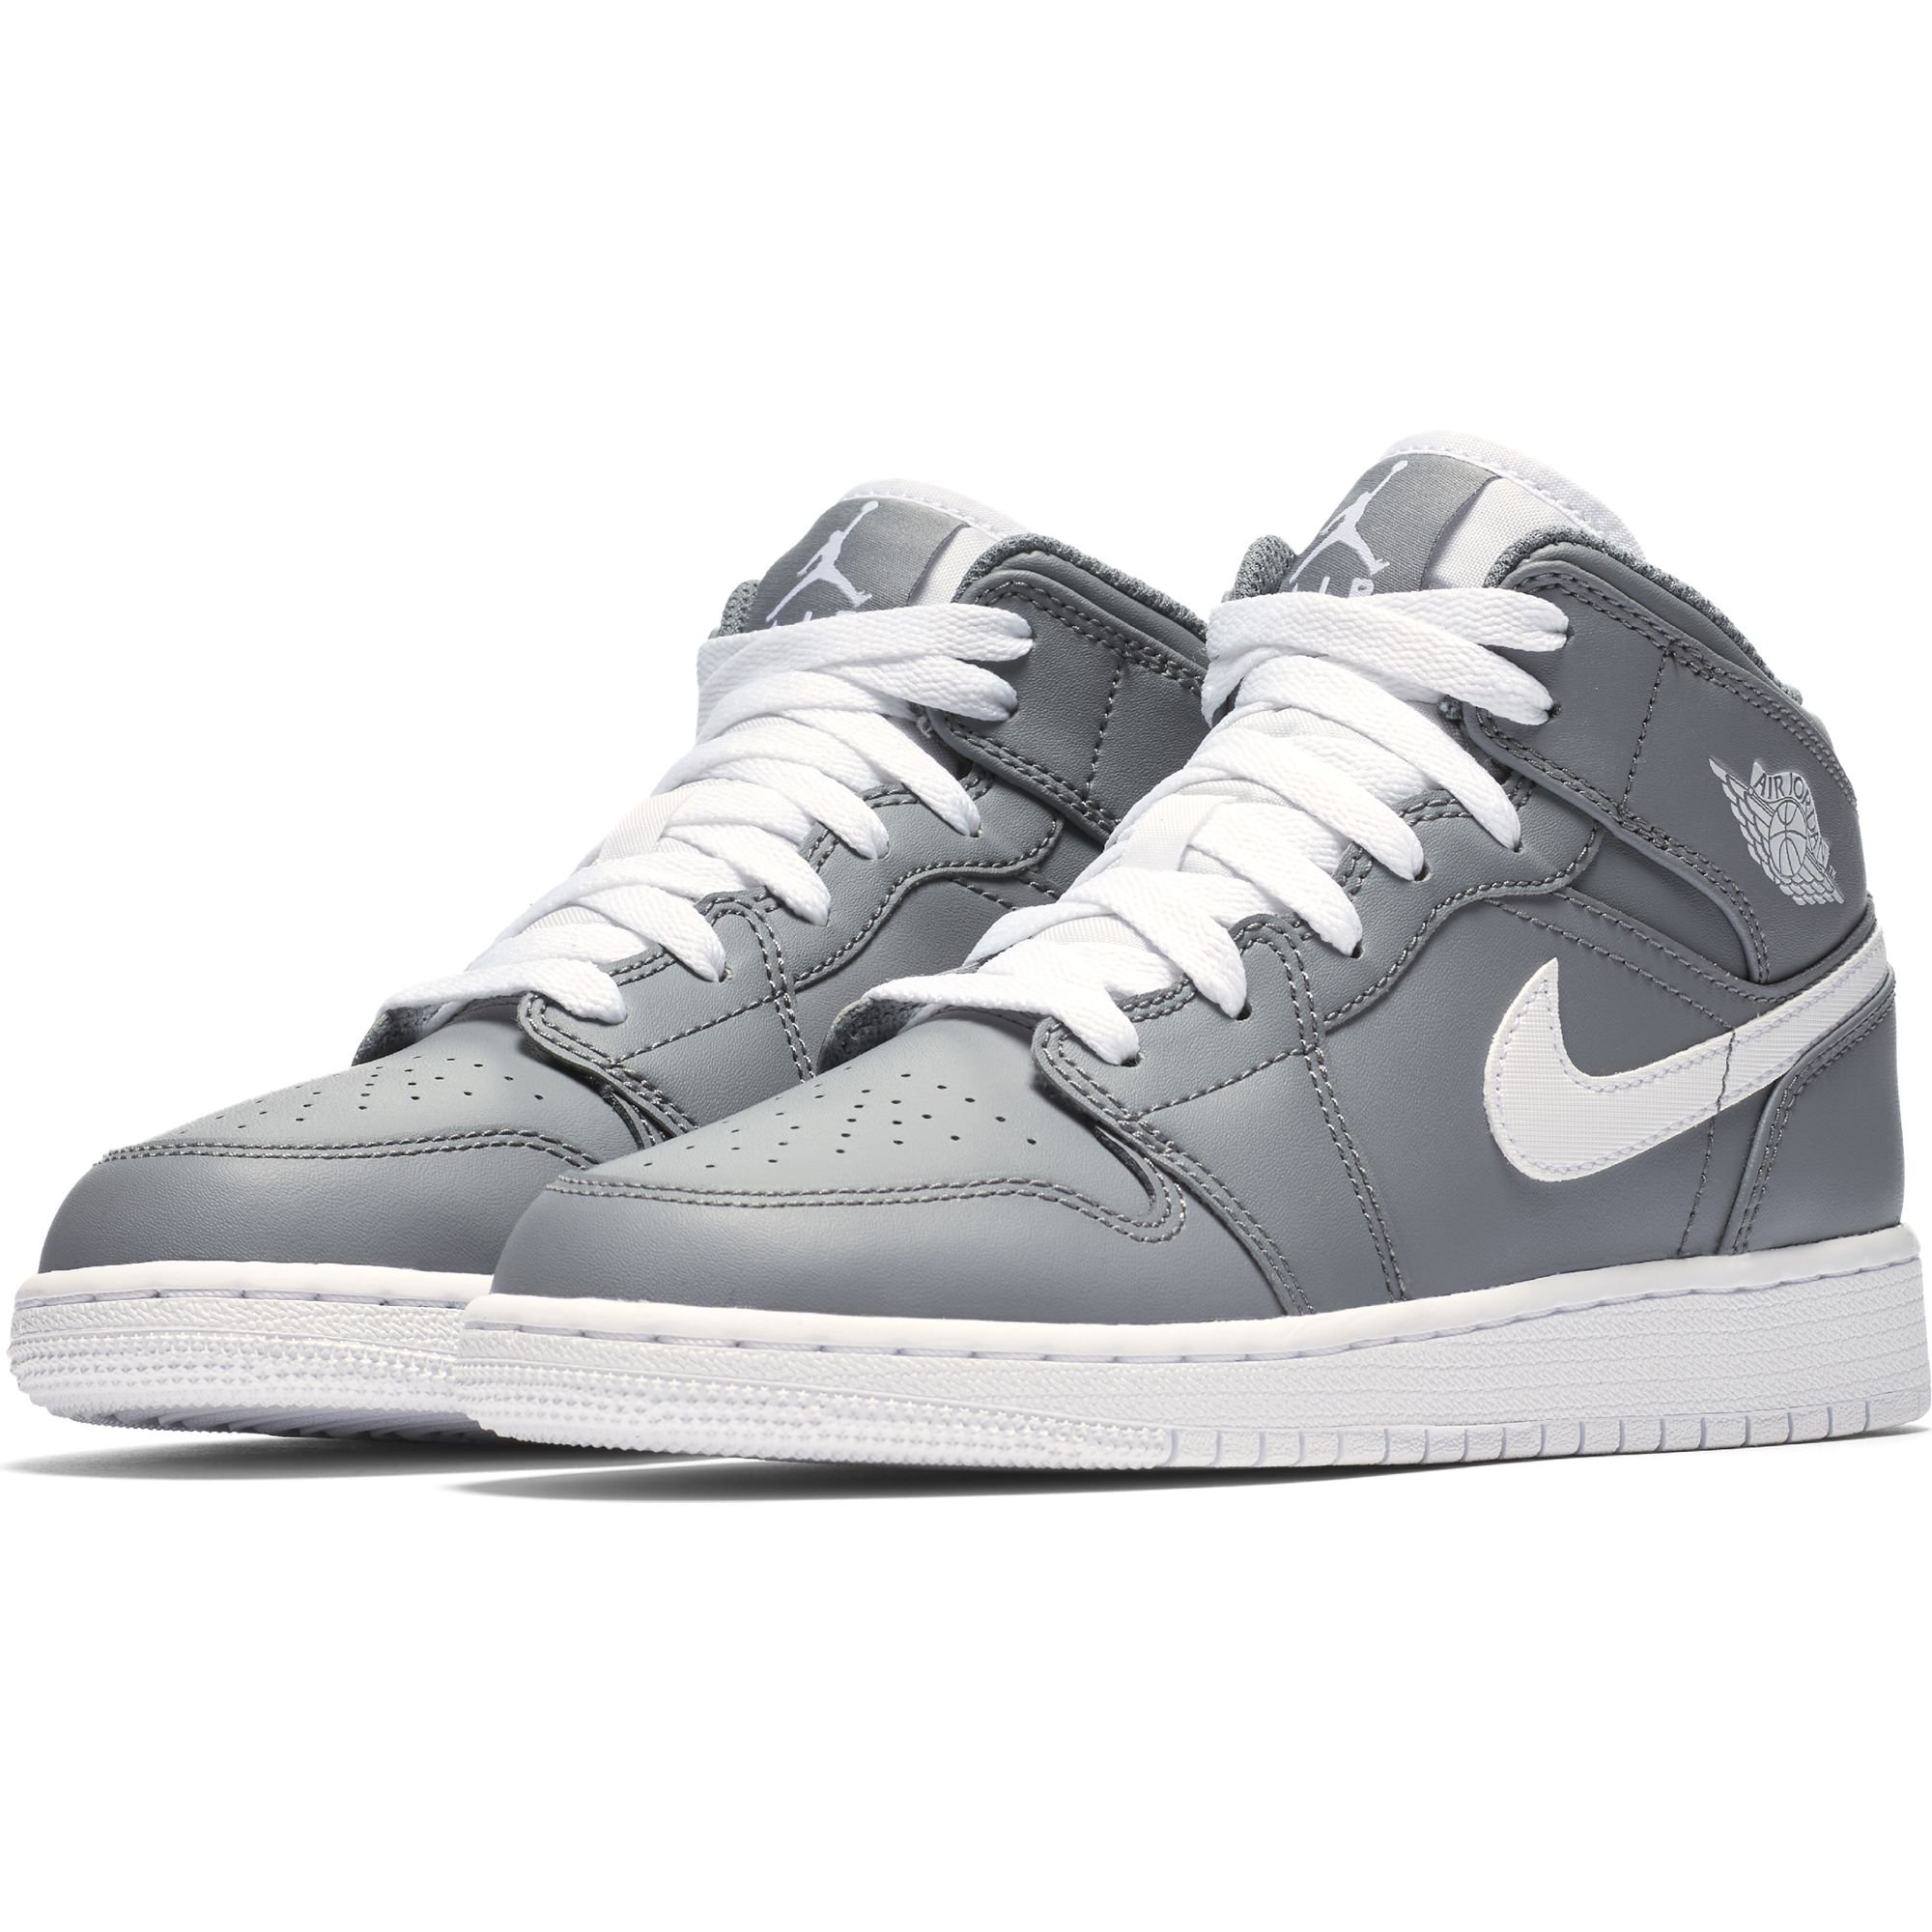 Nike Boy's Air Jordan 1 Mid Basketball Shoe (GS), Cool Grey/White-White 6.5Y by Jordan